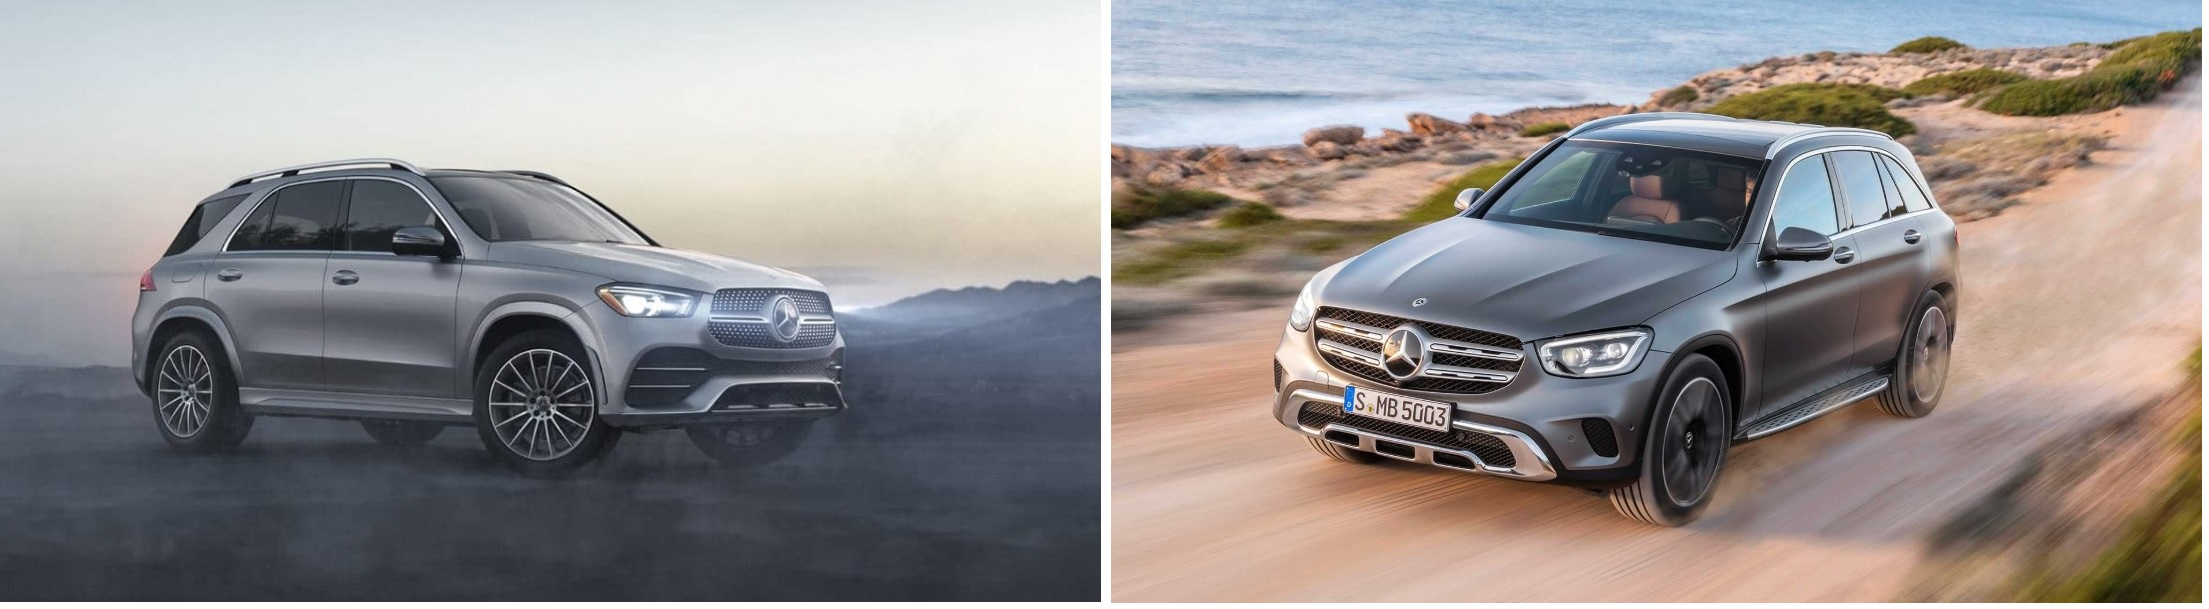 2020 Mercedes GLE vs 2020 Mercedes GLC